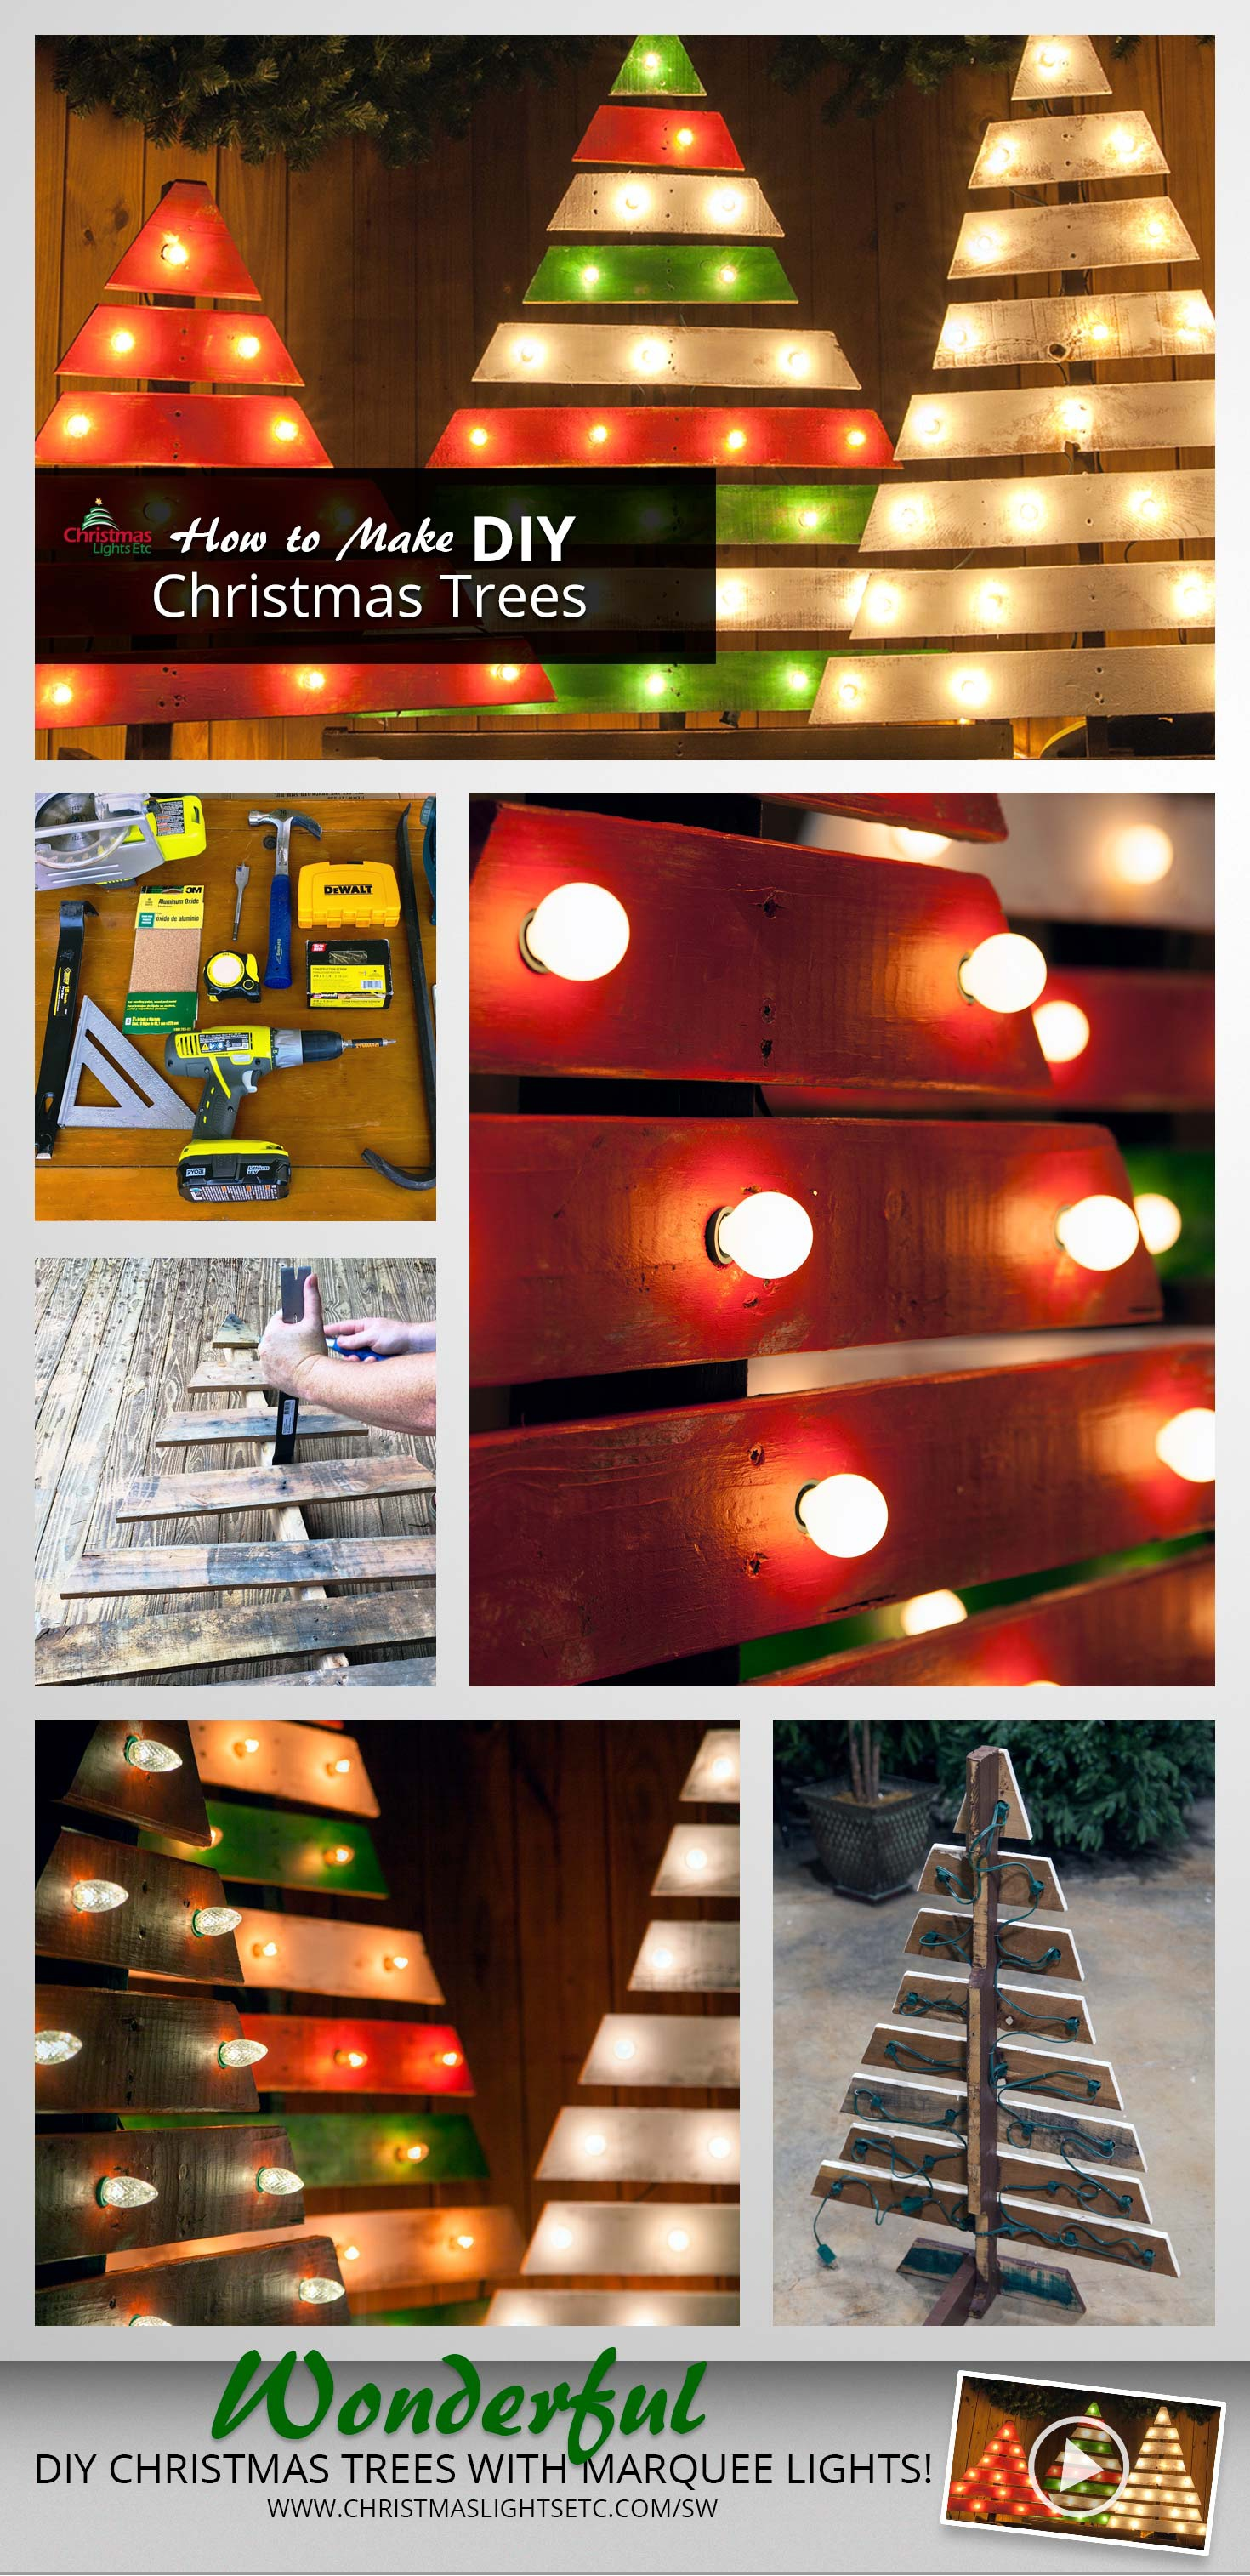 How to Make a DIY Christmas Tree Using Pallets and Marquee Sign Lights